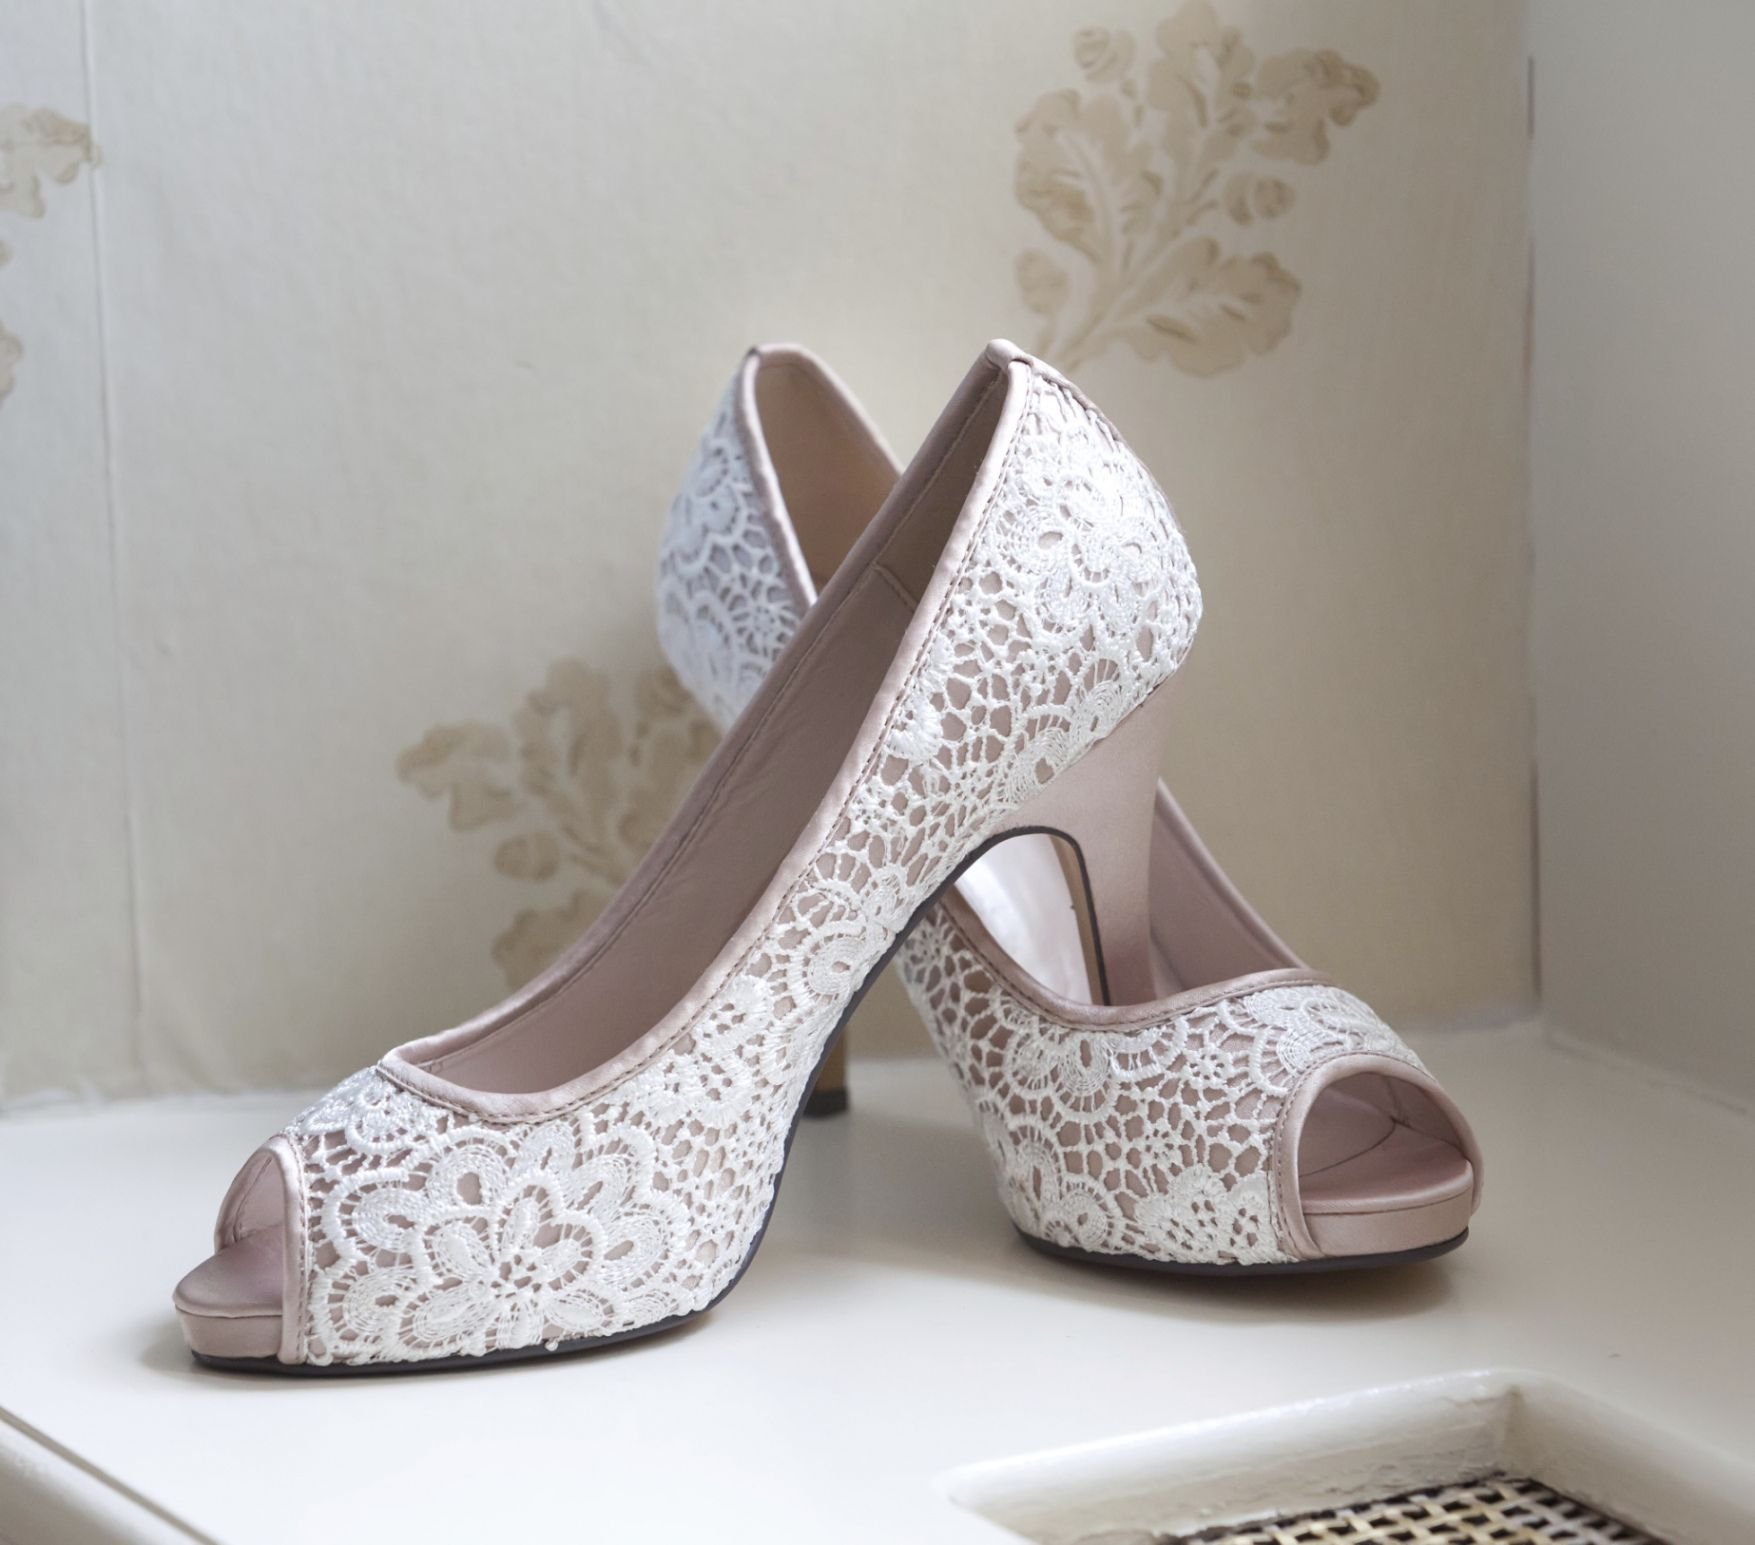 2019 Dress Wedges for Wedding - Wedding Dresses for Plus Size Check ...